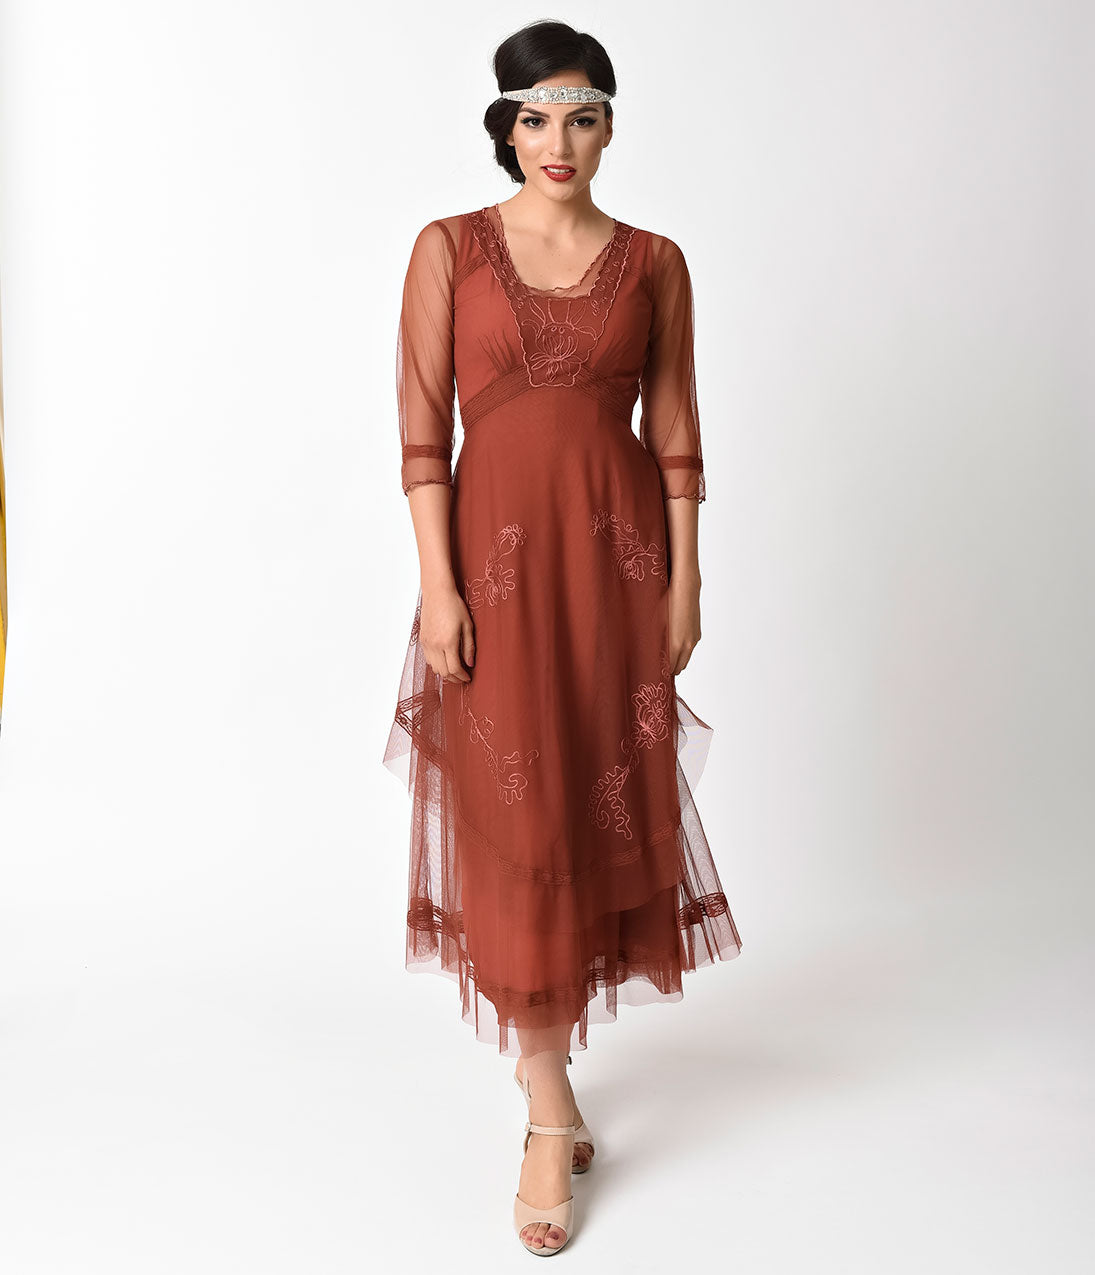 1920s Style Dresses, Flapper Dresses 1930S Vintage Style Tan Tulle Sleeved Long Dress $252.00 AT vintagedancer.com